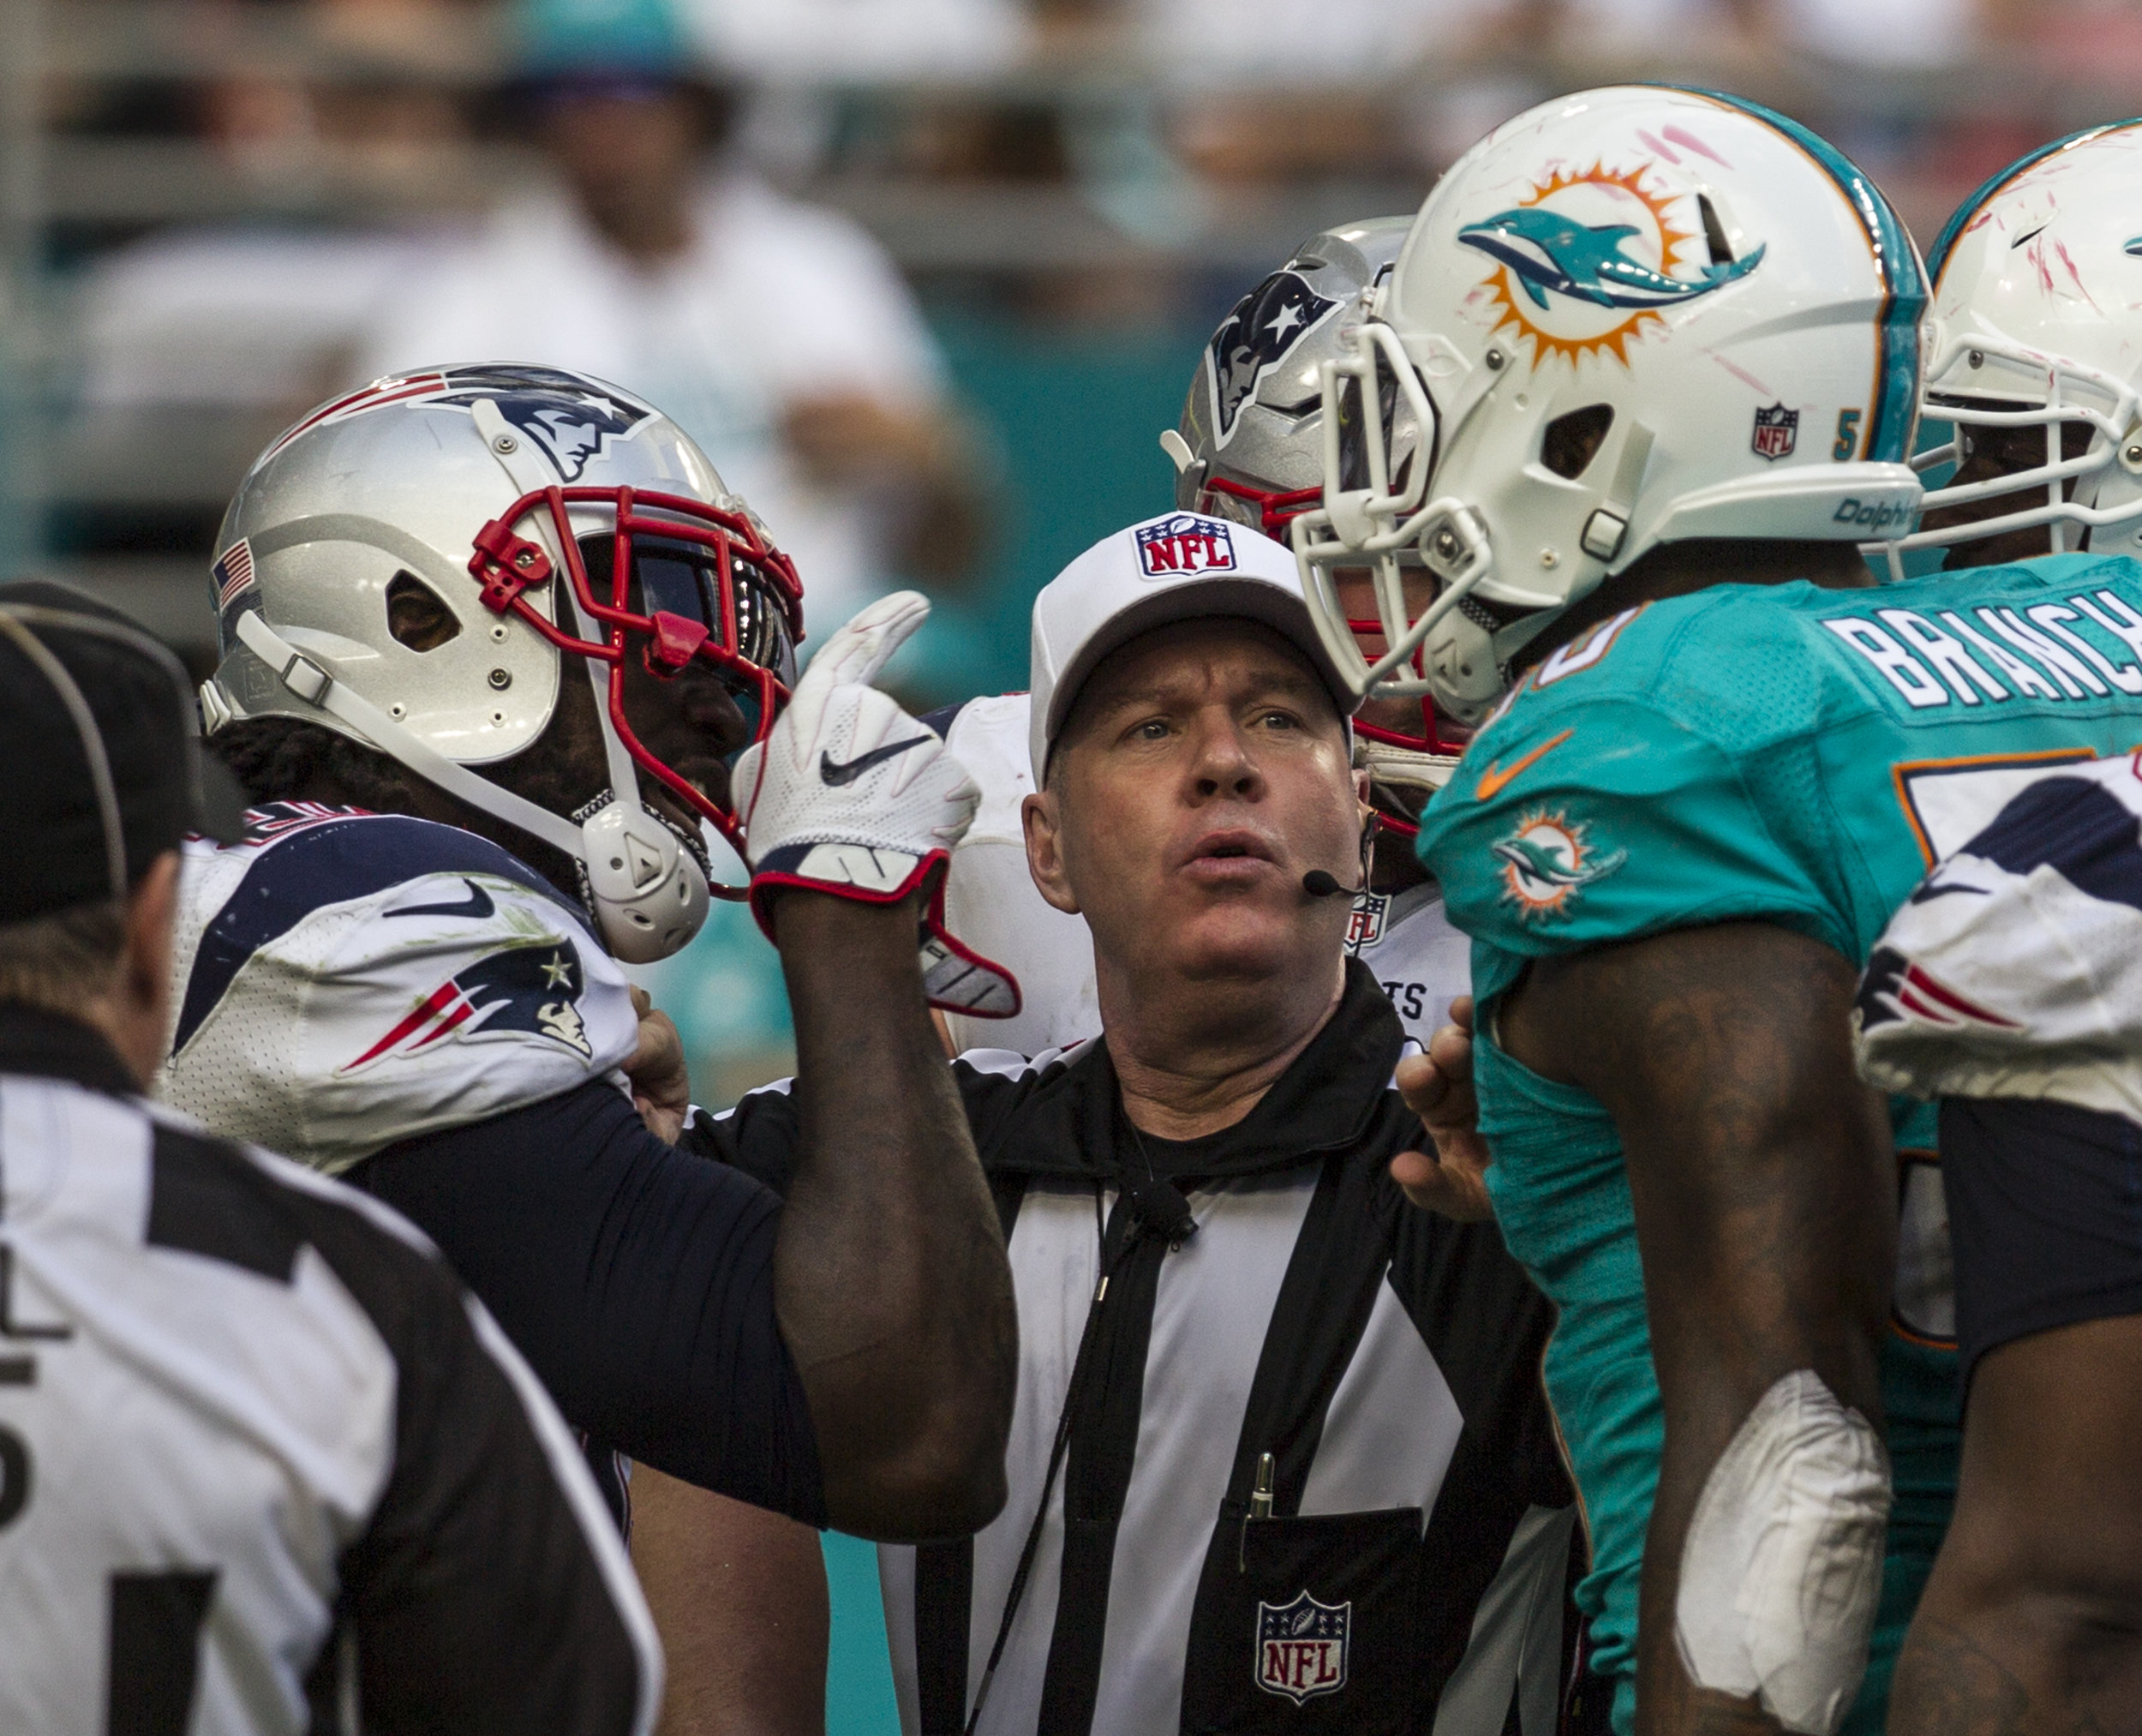 New England Patriots running back LeGarrette Blount argues with the Miami Dolphins defensive line after a play at Hard Rock Stadium in Miami Gardens, Florida, January 1, 2017.